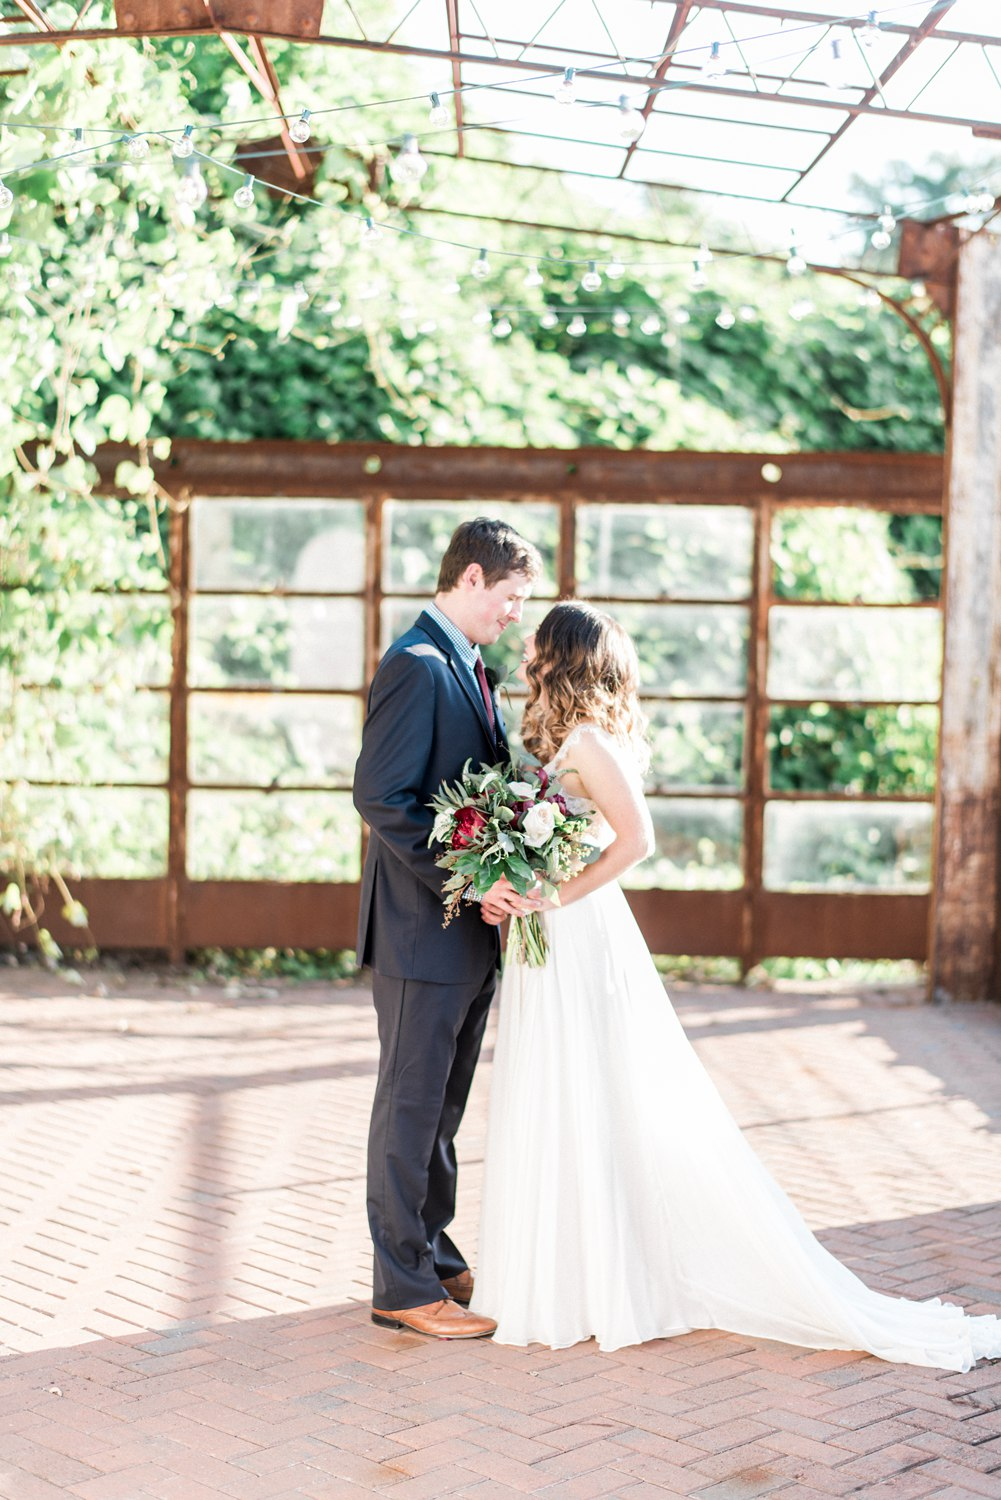 The Standard Knoxville Wedding | Knoxville Wedding Photographer